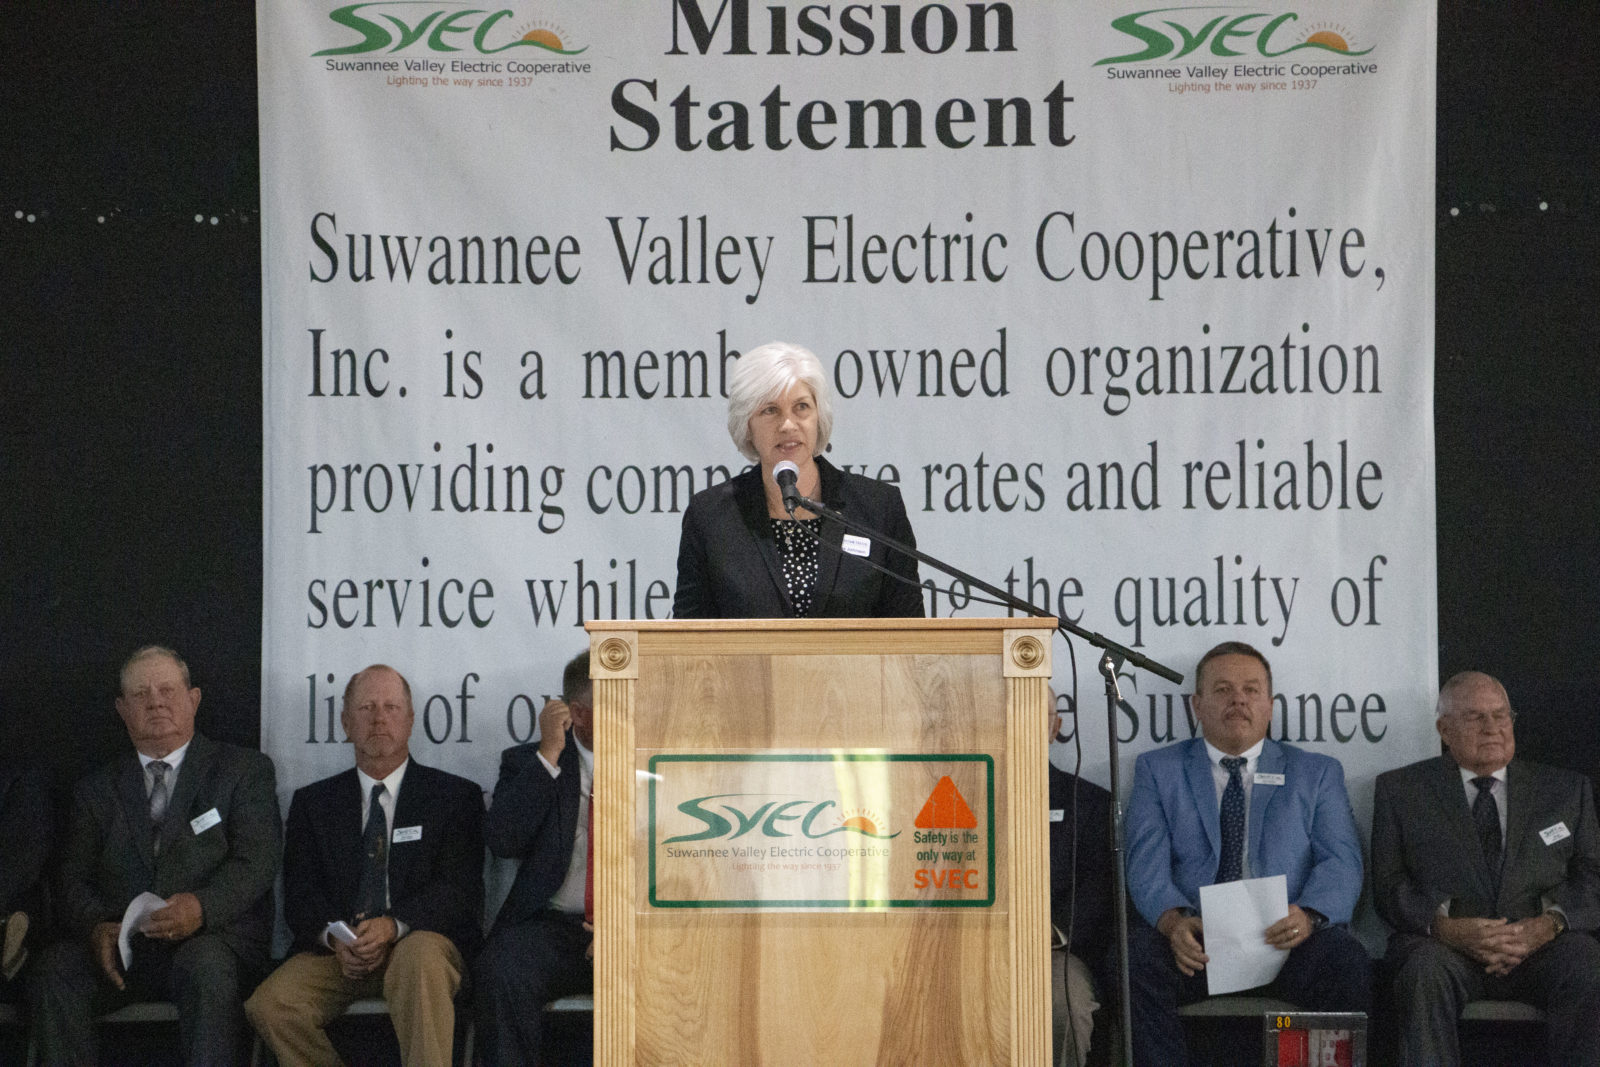 General Manager Lisa Johnson speaking at a podium with board members seated behind her. A banner behind her contains the SVEC logo and reads: Mission Statement. Suwannee Valley Electric Cooperative, Inc. is a member owned organization providing competitive rates and reliable service while…